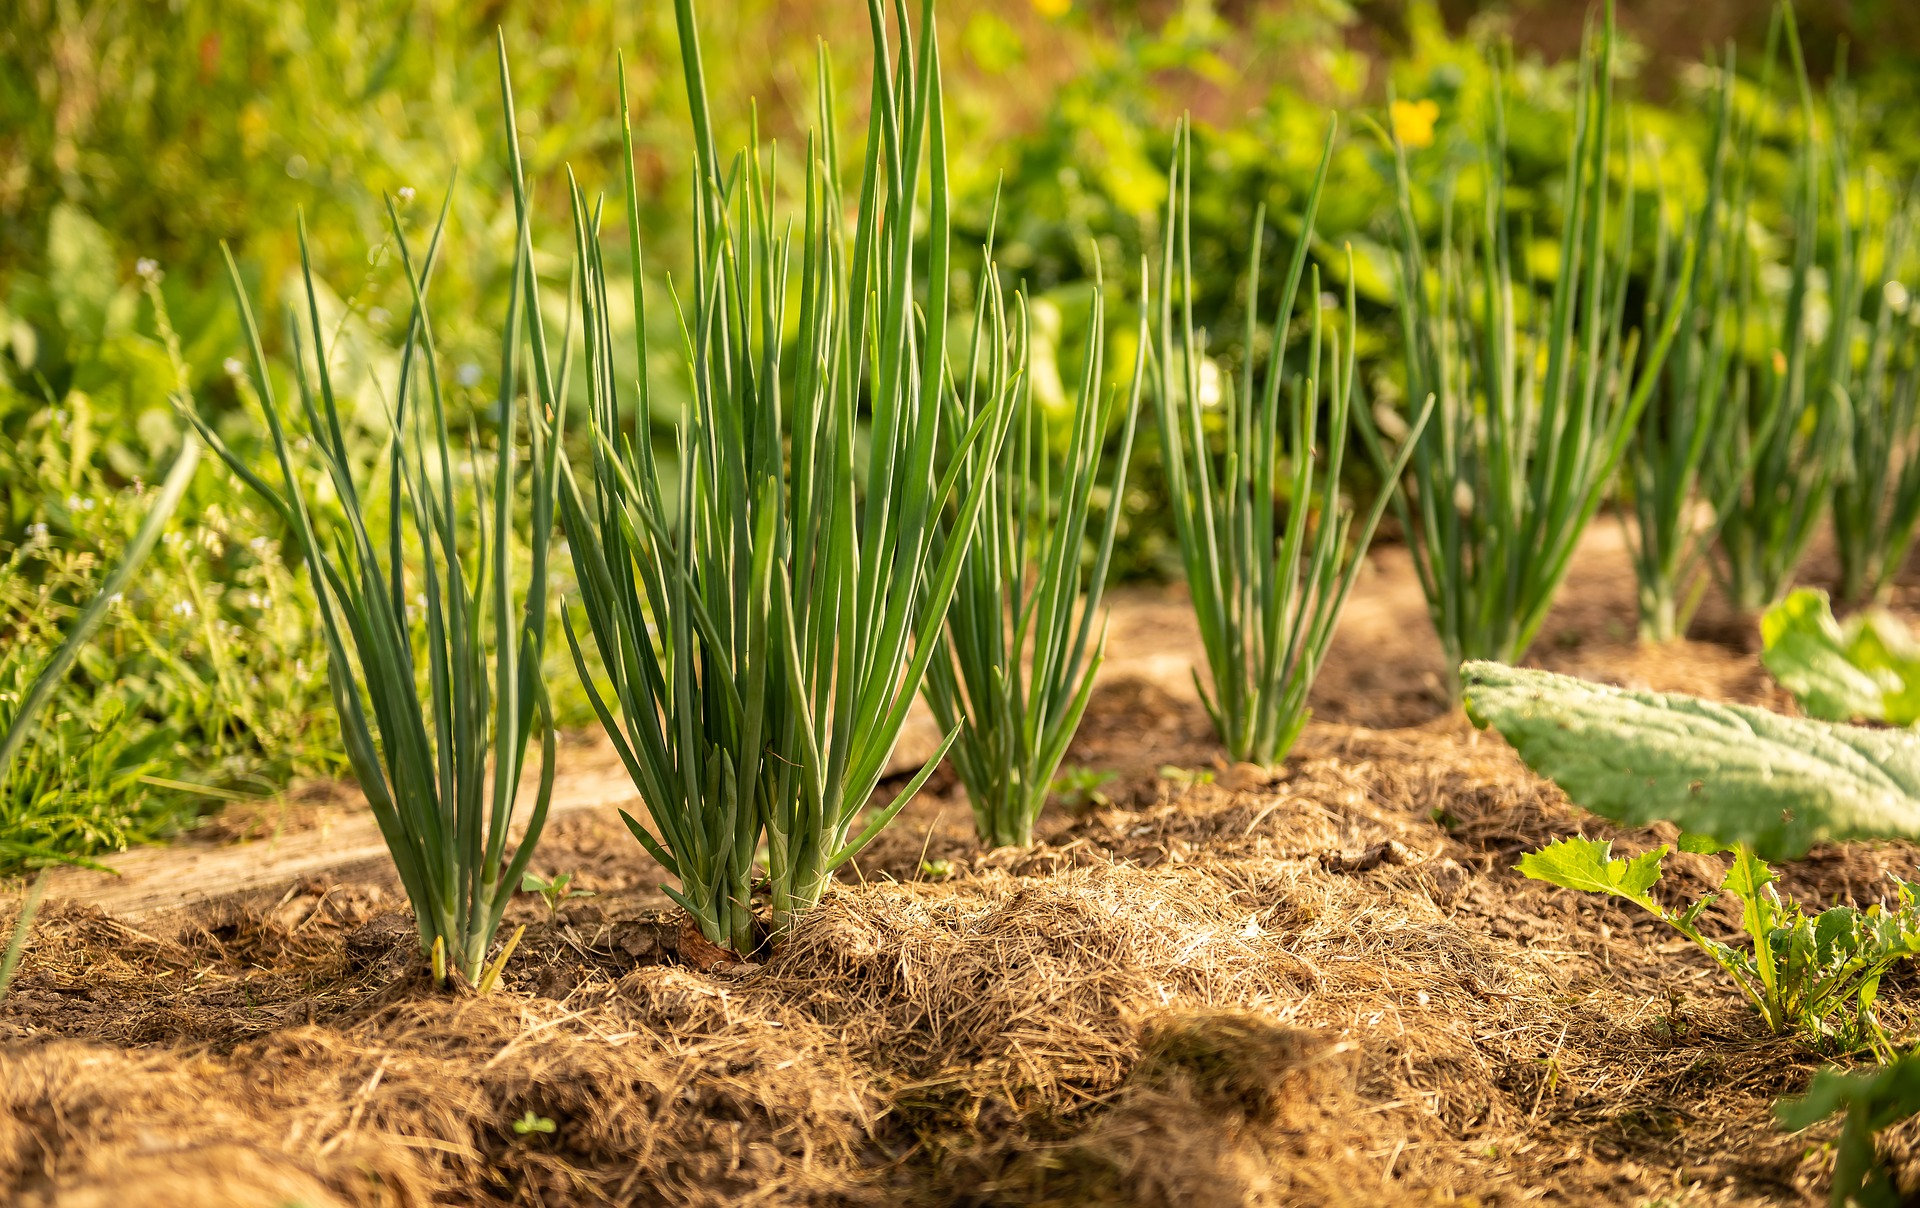 The Complete Guide to Successfully Growing Onions From Seed